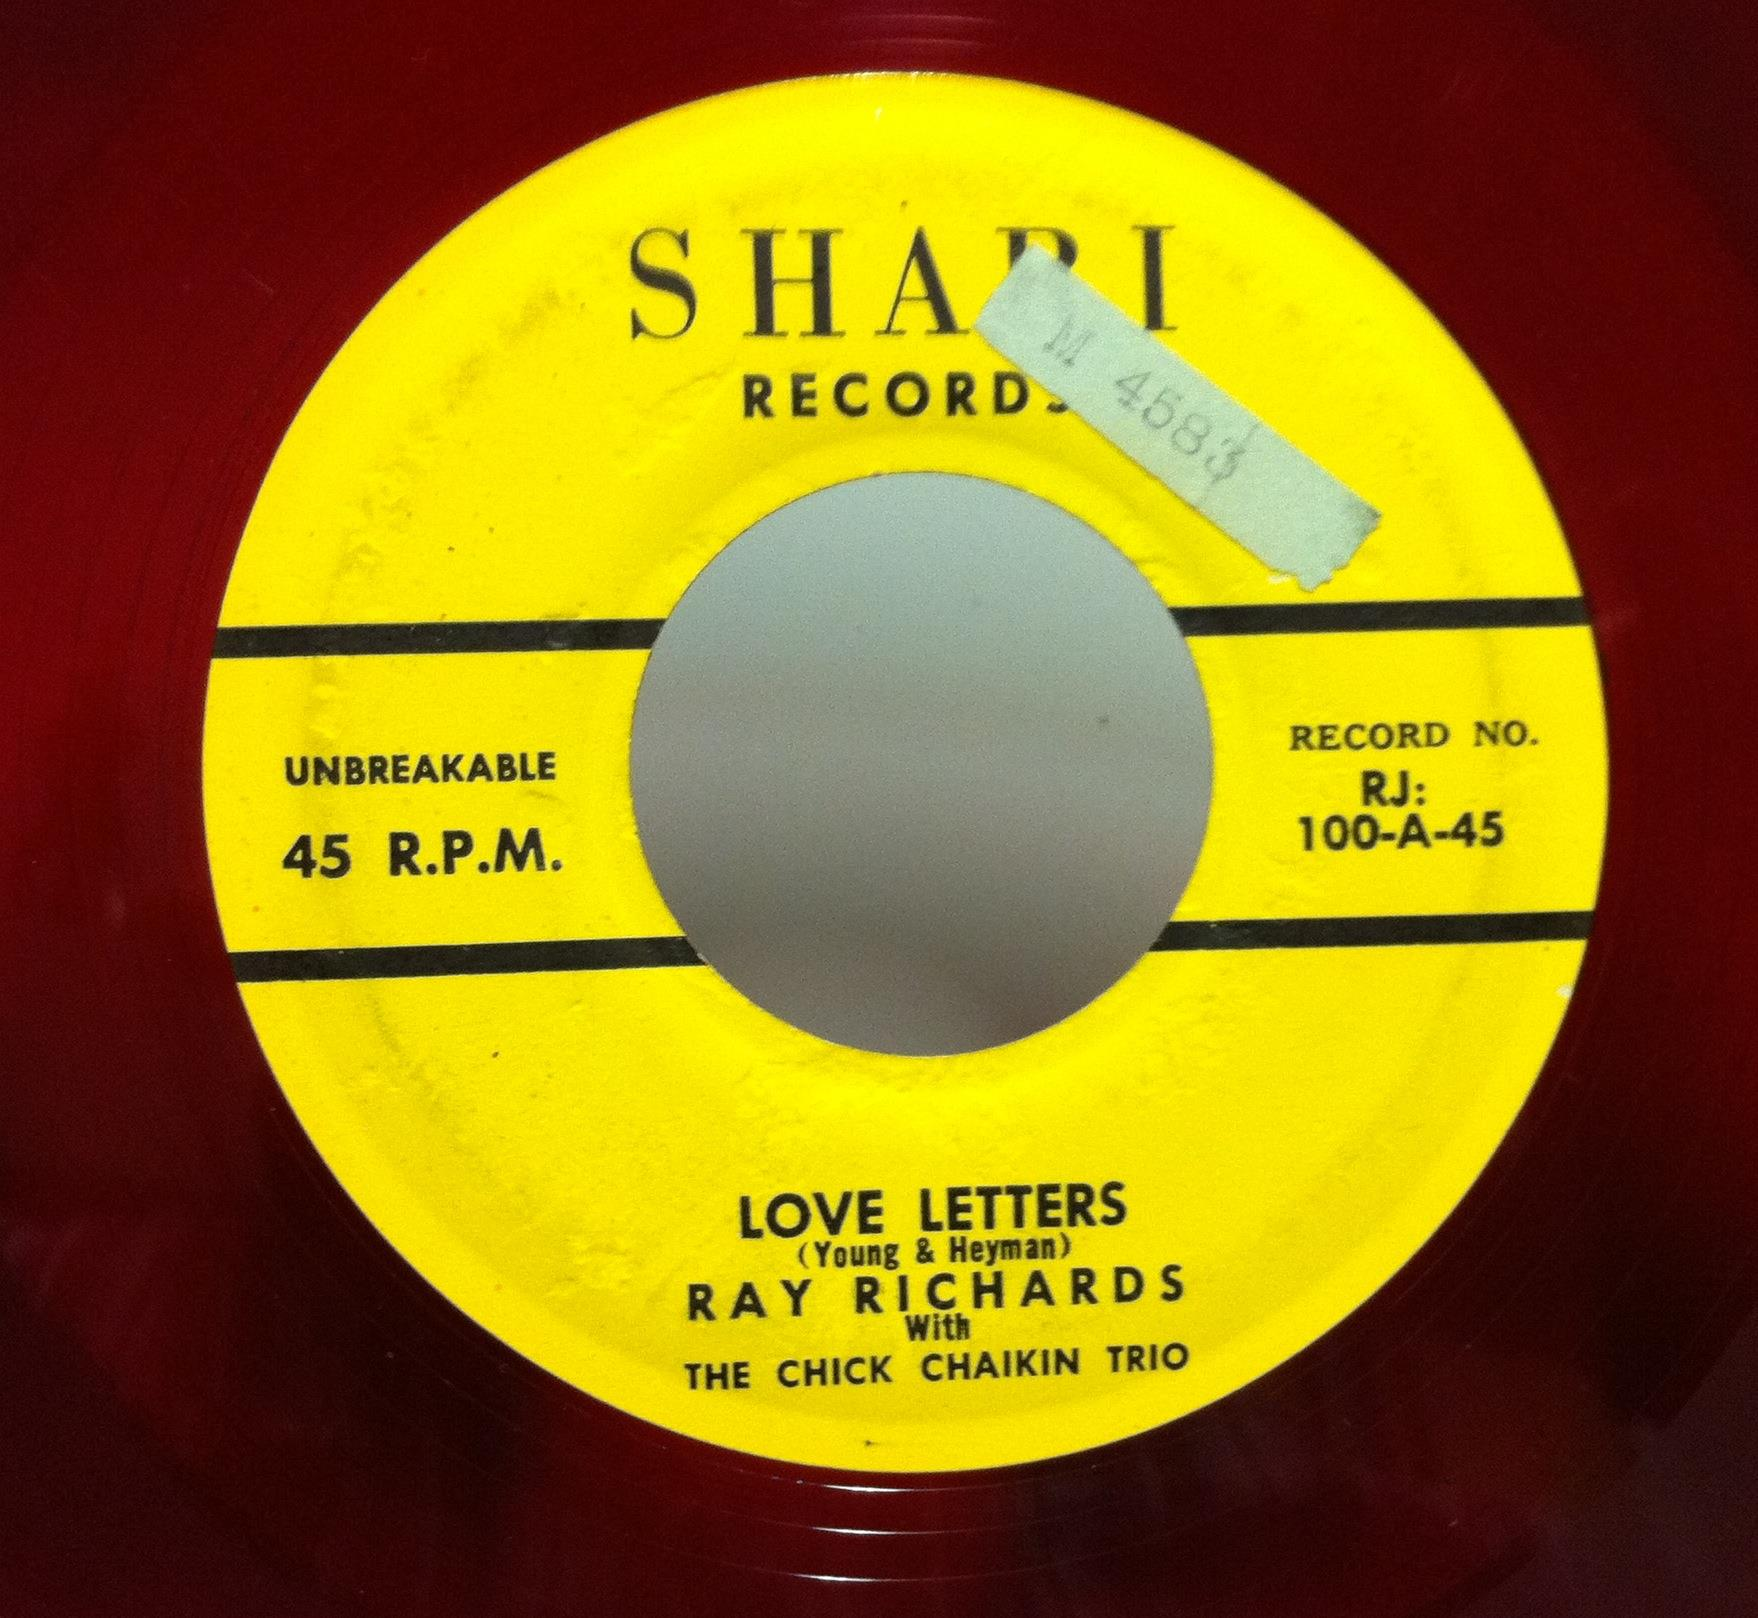 RAY RICHARDS Love Letters That Old Feeling 7 VG RJ 100